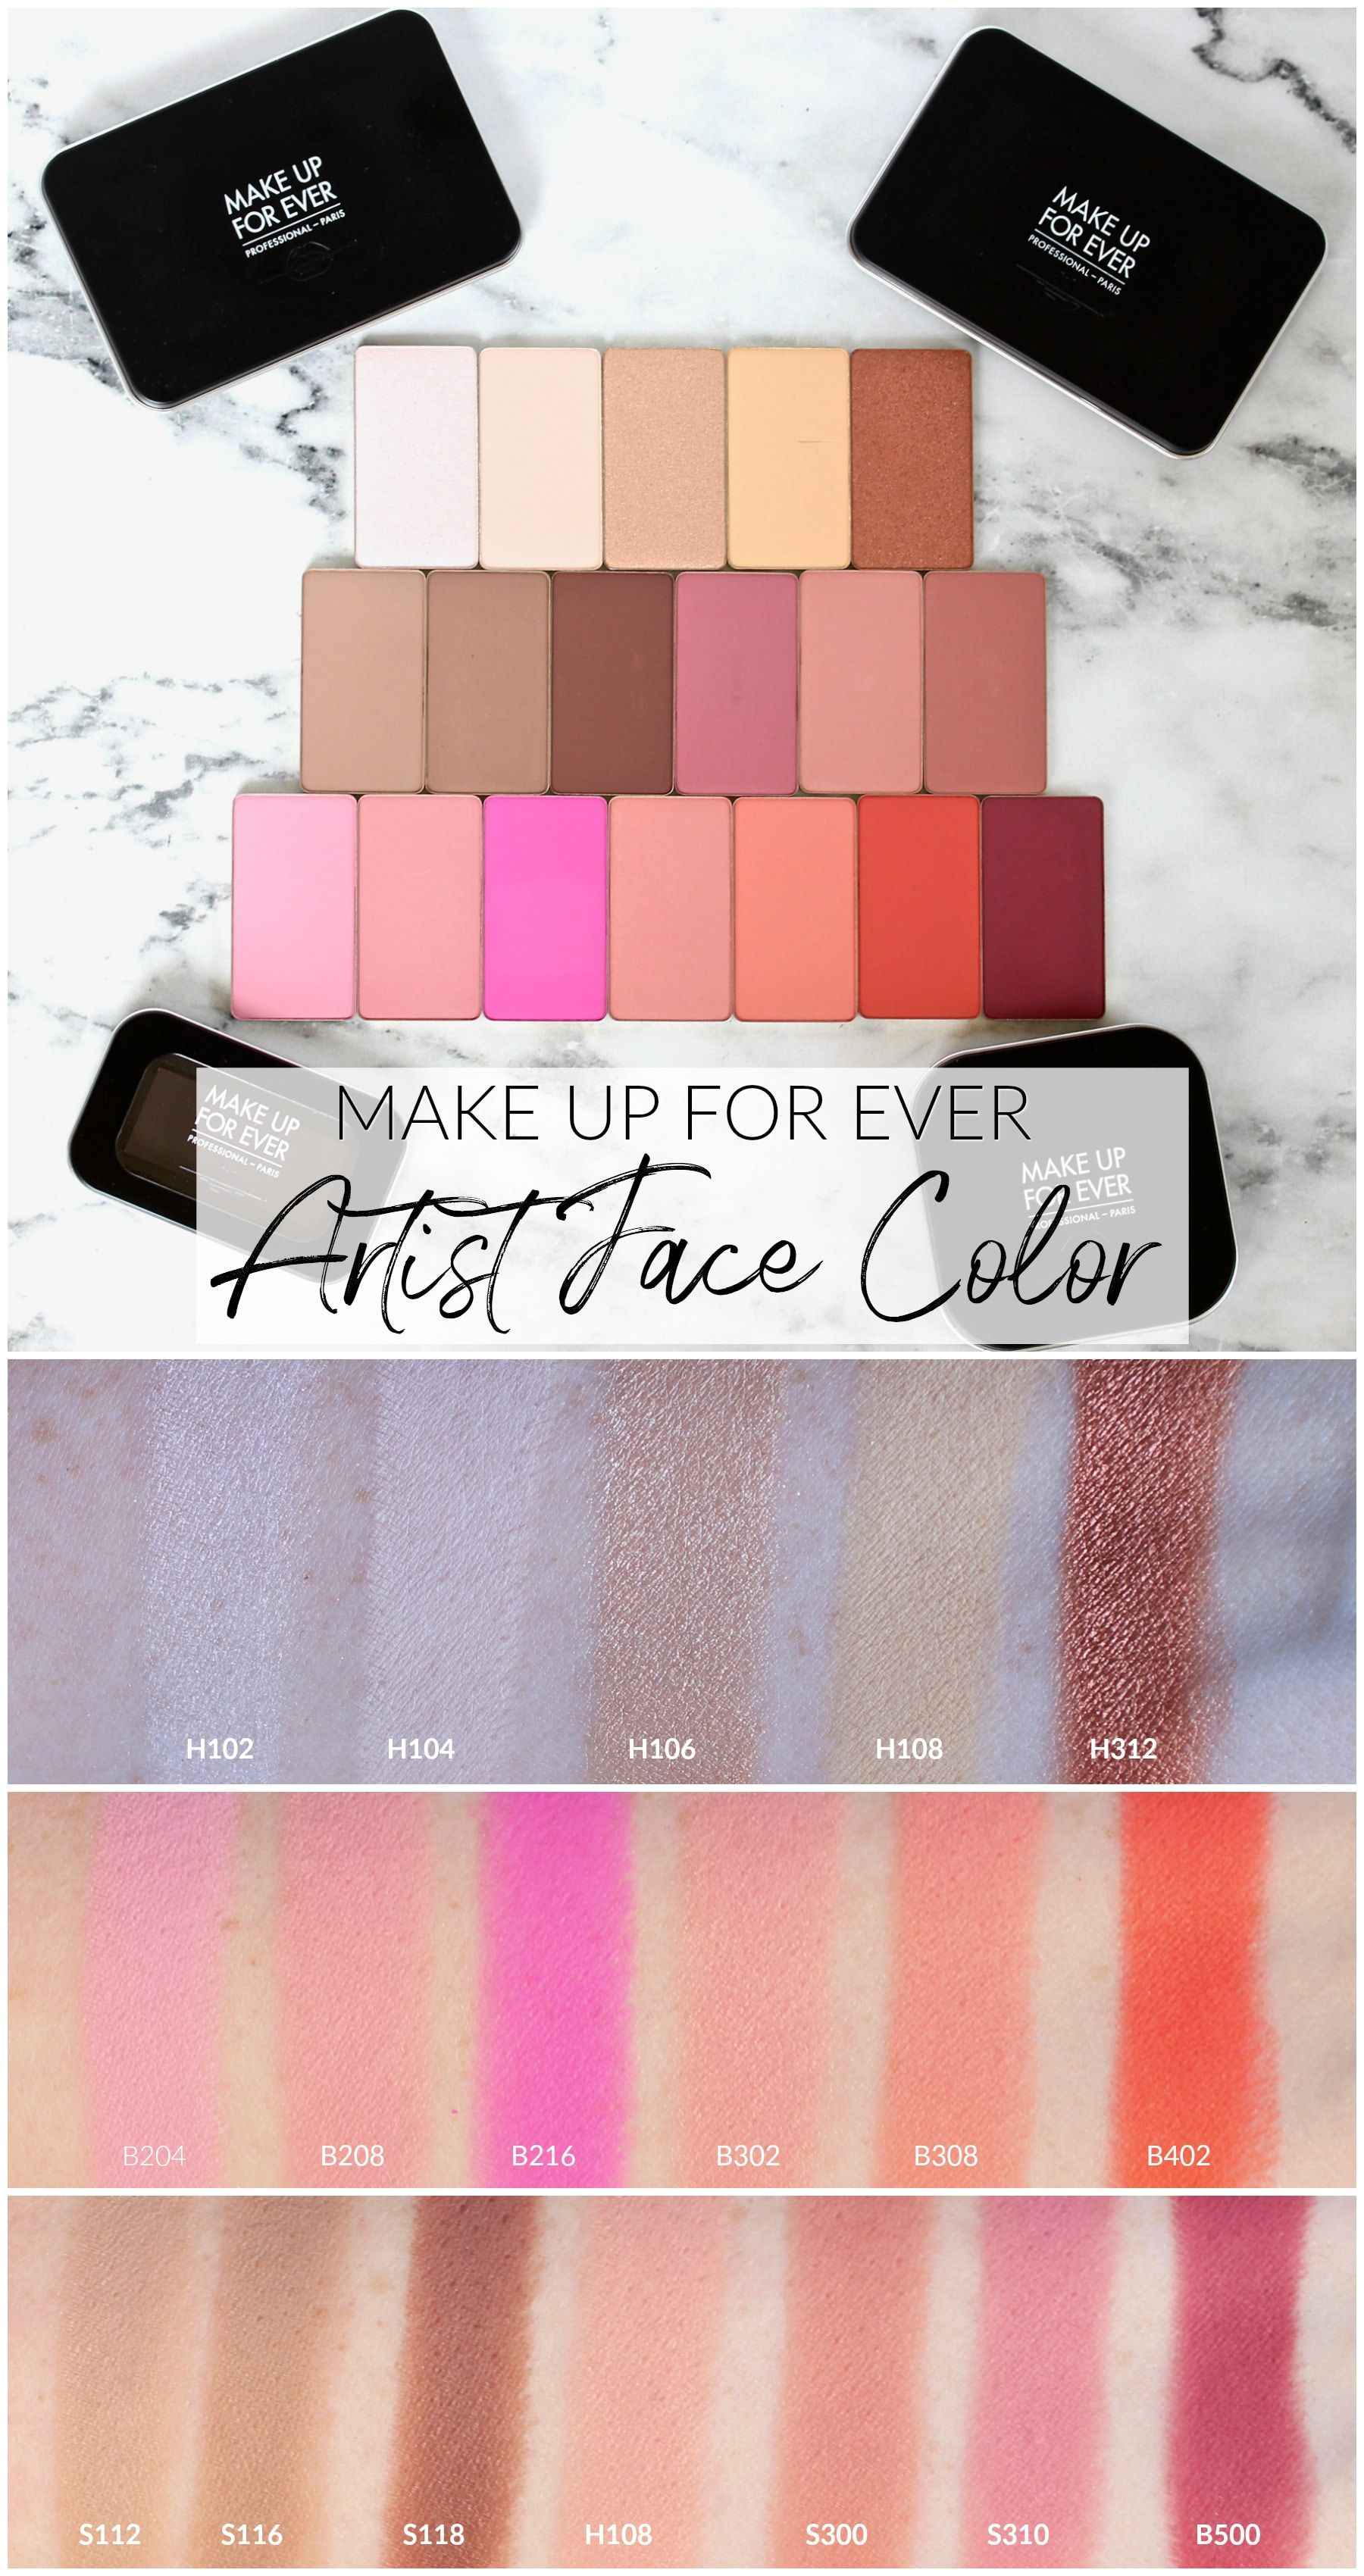 MAKE UP FOR EVER Artist Face Color Highlight, Sculpt, and